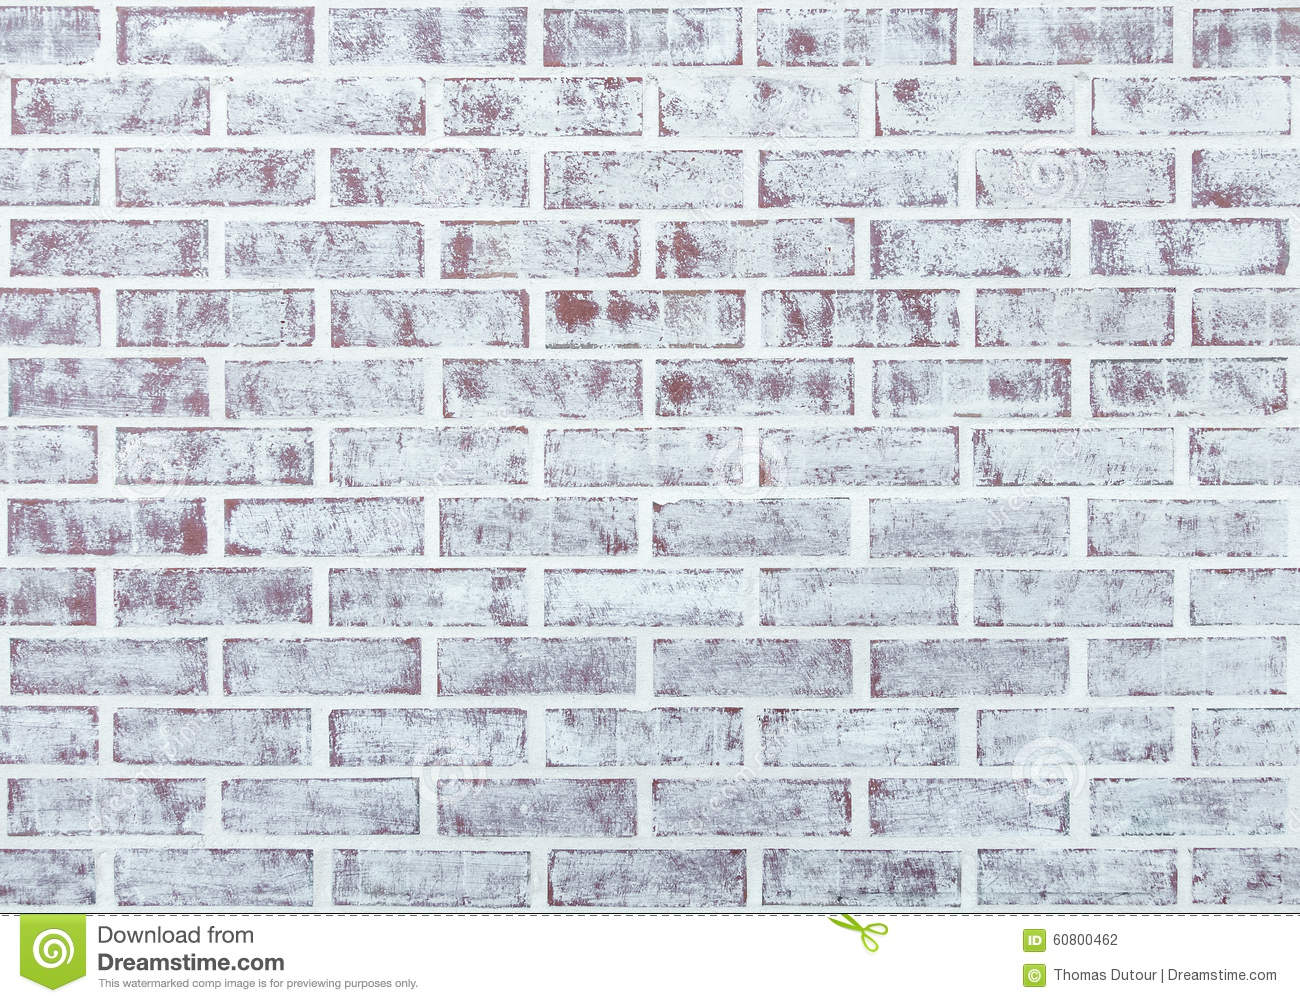 Whitewashed Brick Wall Stock Photo - Image: 60800462